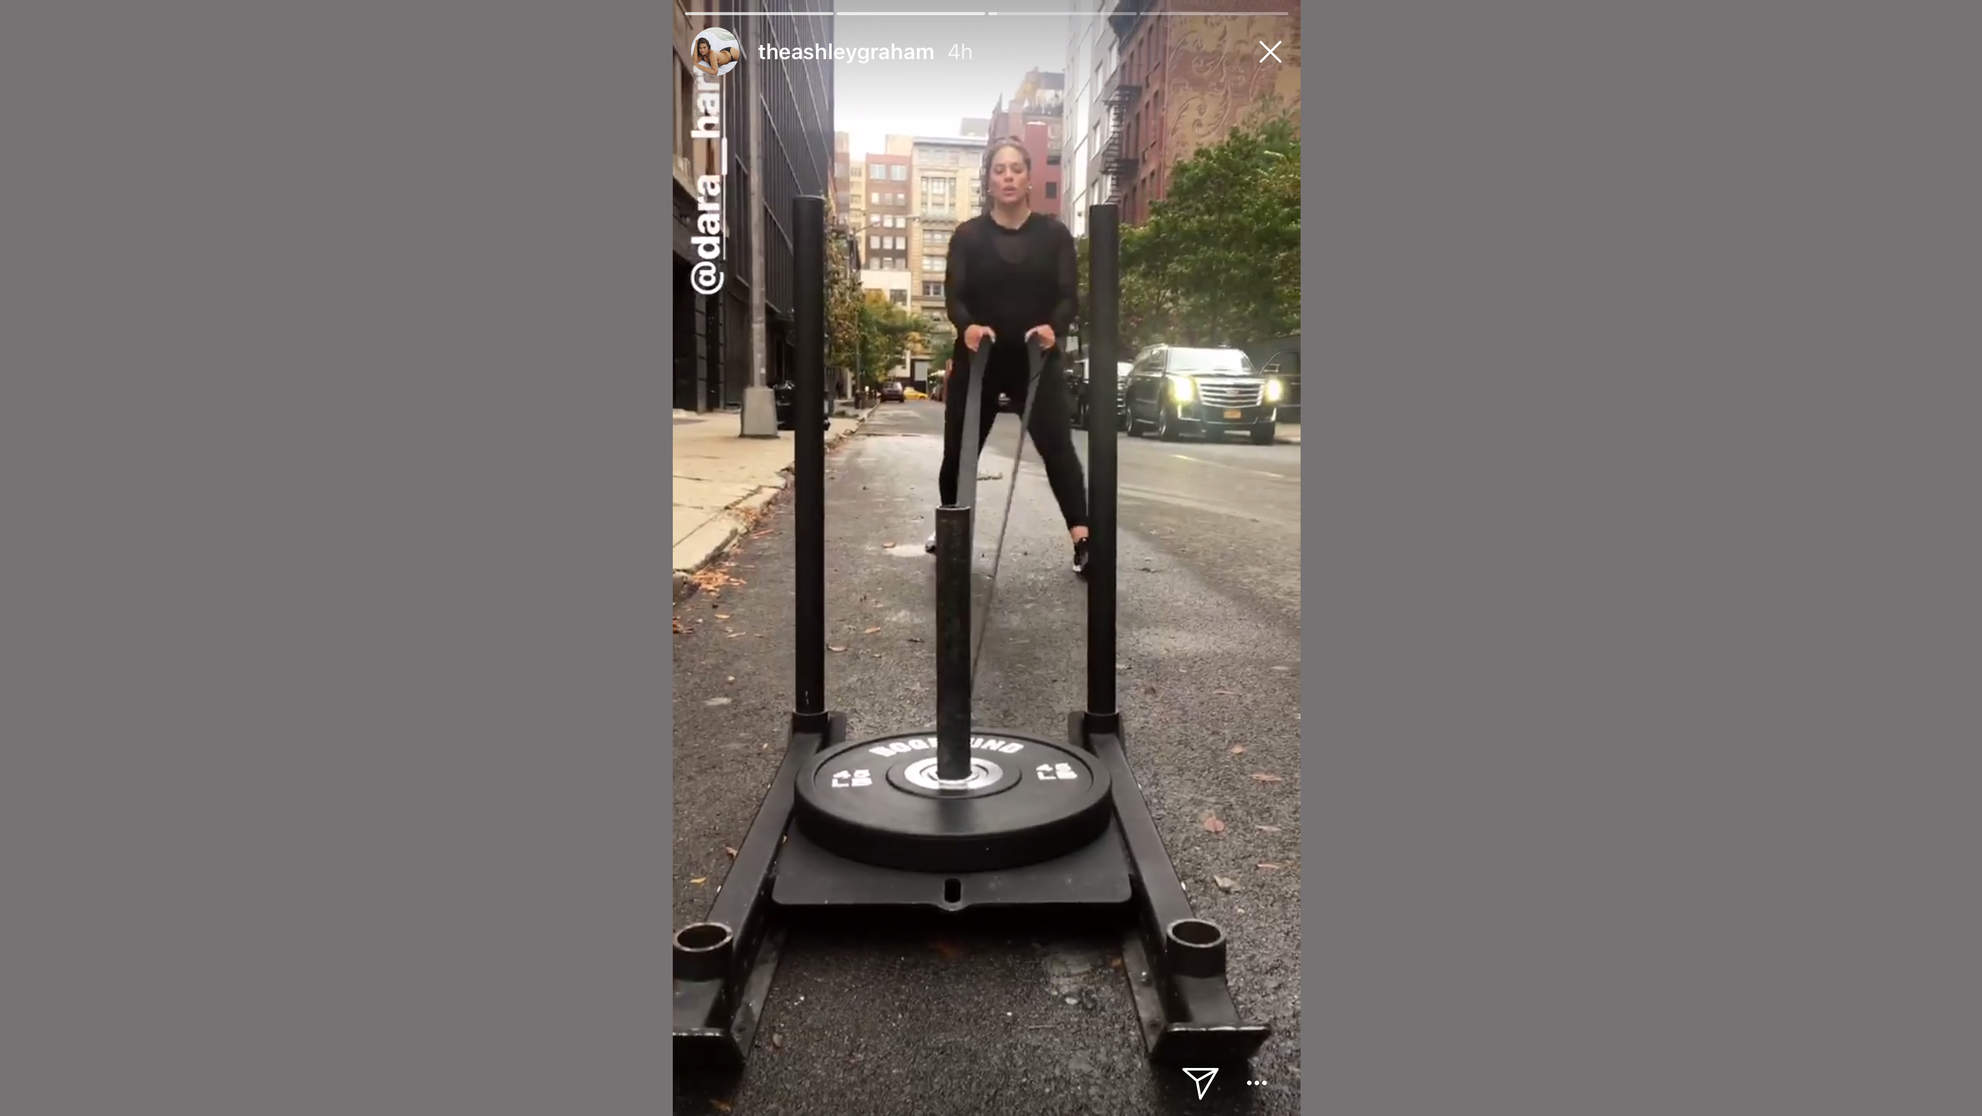 ashley graham weighed sled